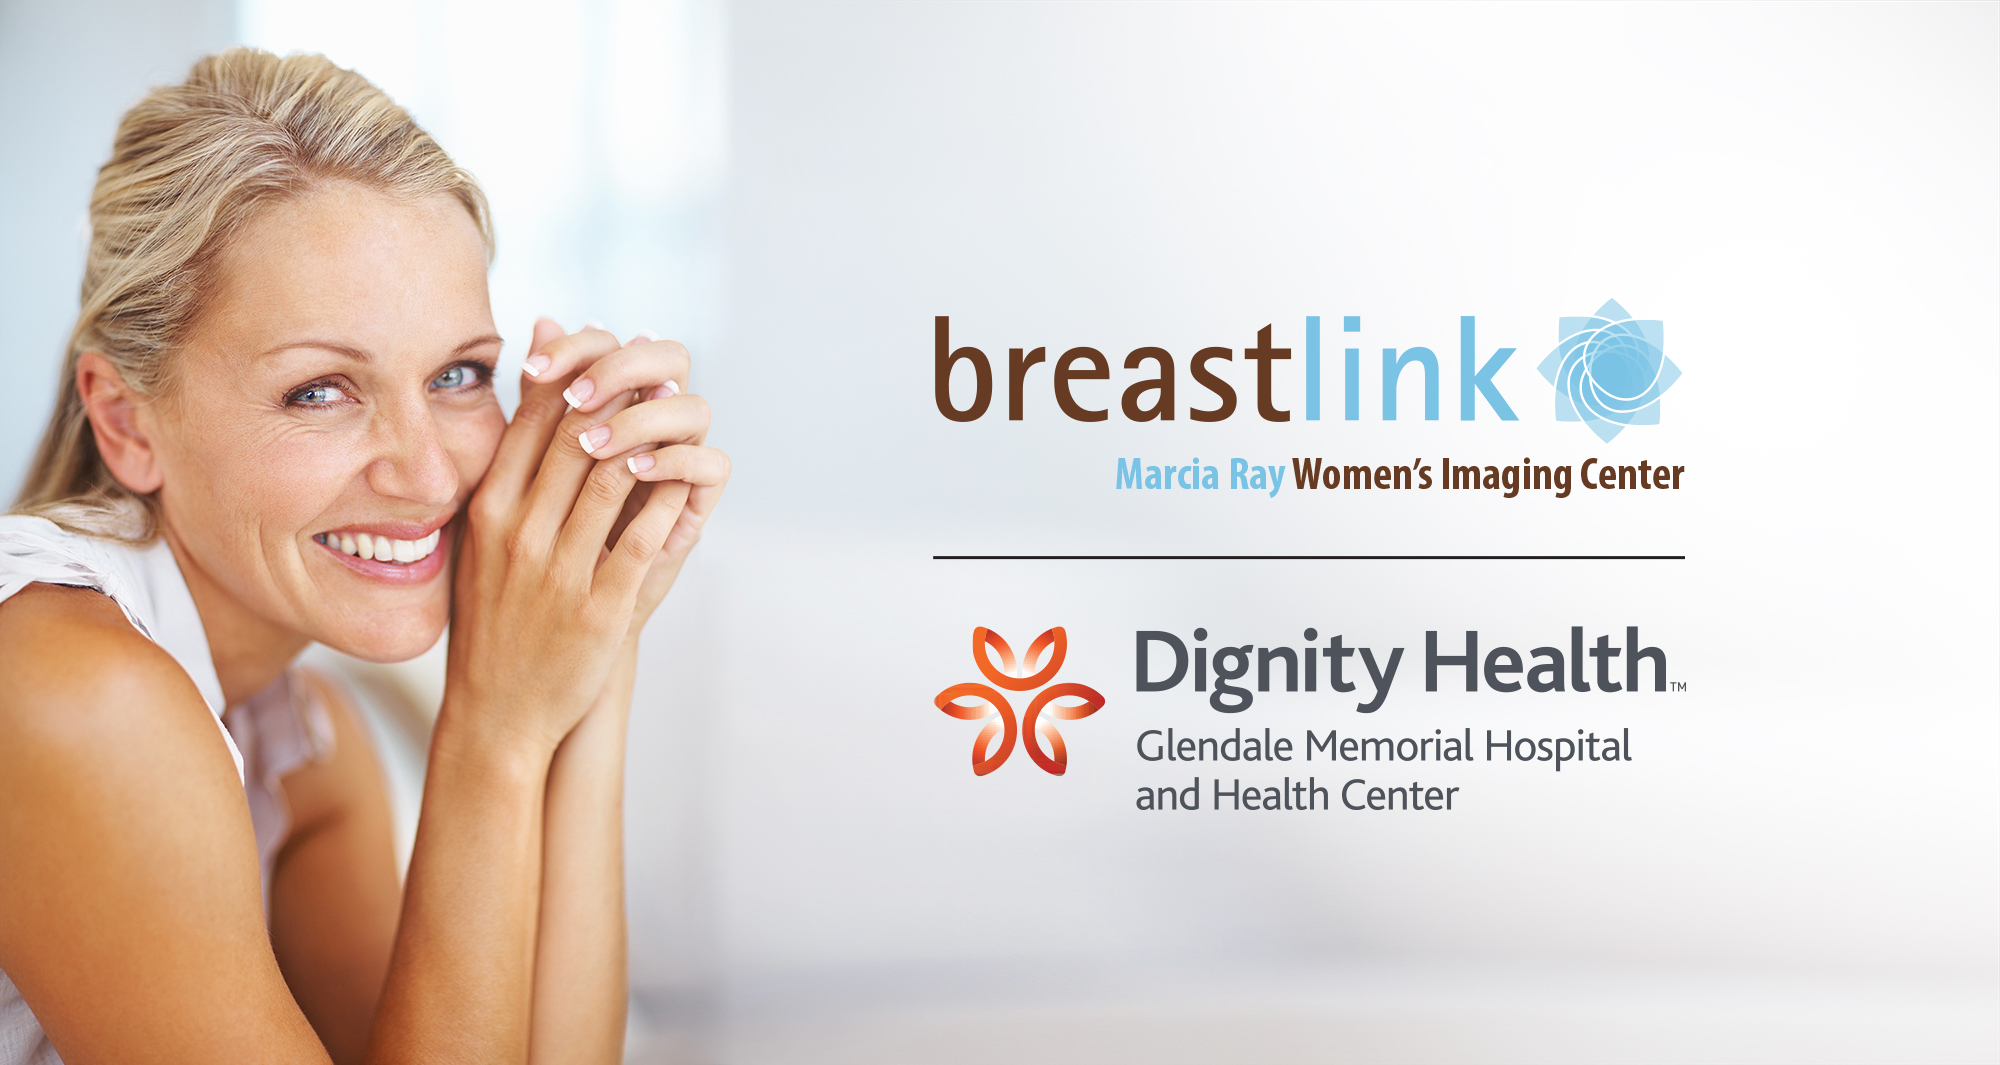 Breastlink's Marica Ray Center Provides Breast Cancer Screening in Glendale